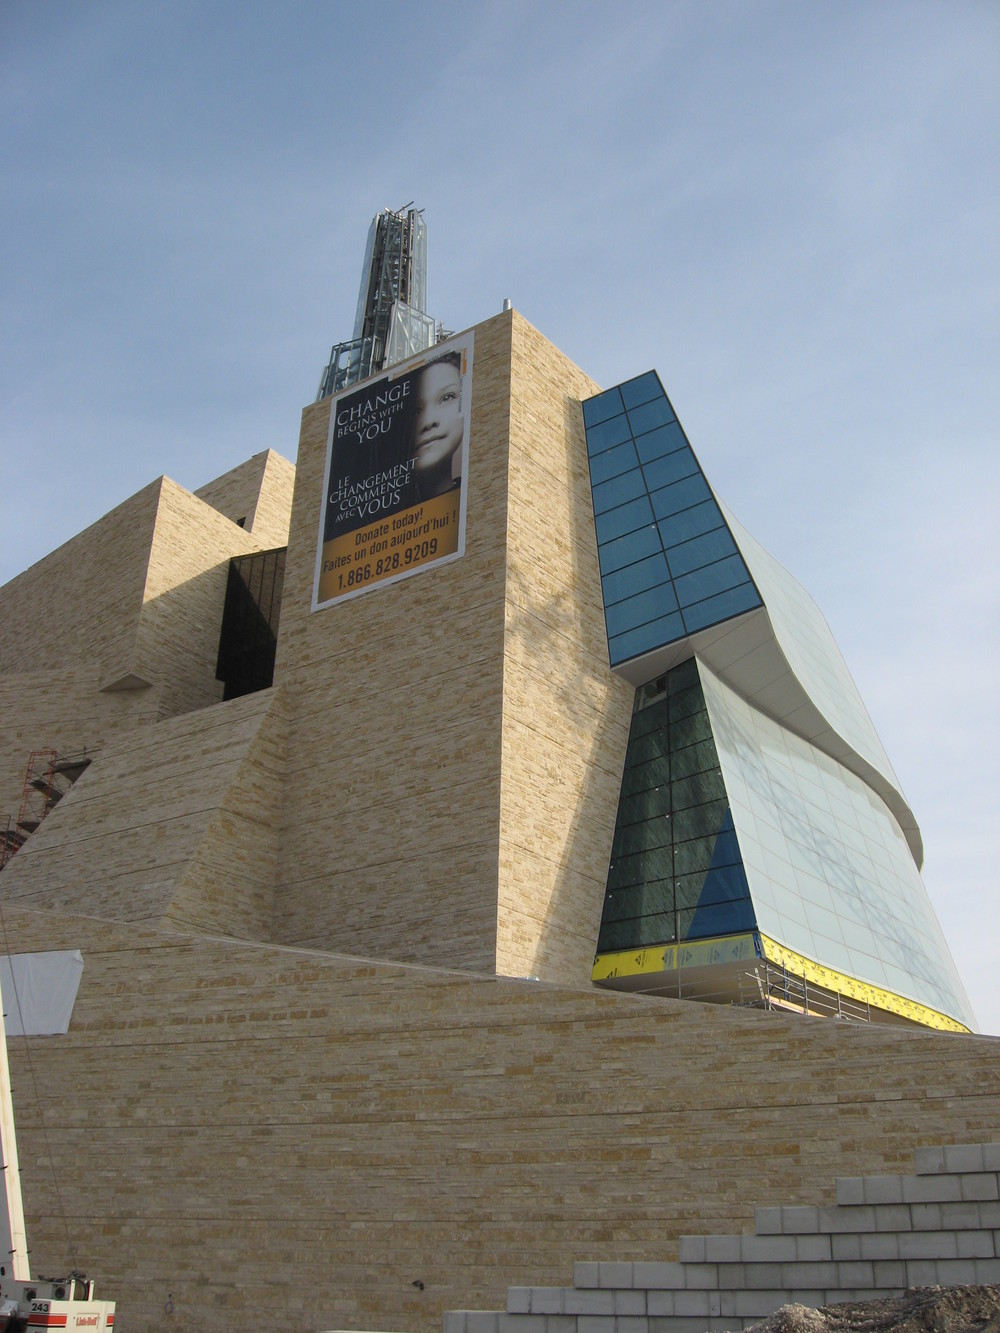 Winnipeg's Human Rights Museum will add another dimension to The Forks, one of North America's best urban people places.